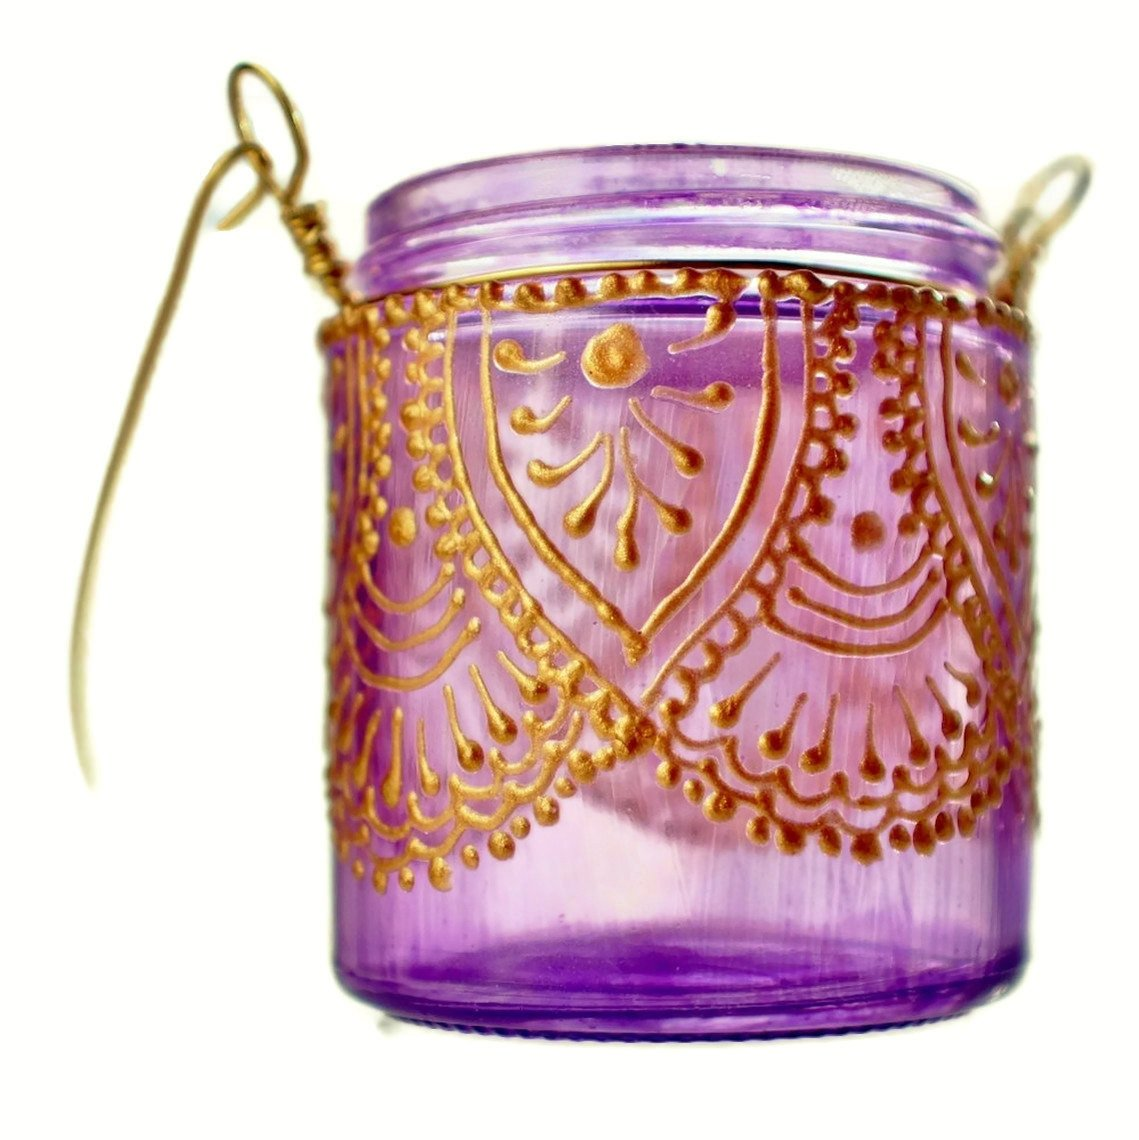 Moroccan Paper Lanterns Hanging Candle Holder Inspired by Moroccan Lanterns Lavender